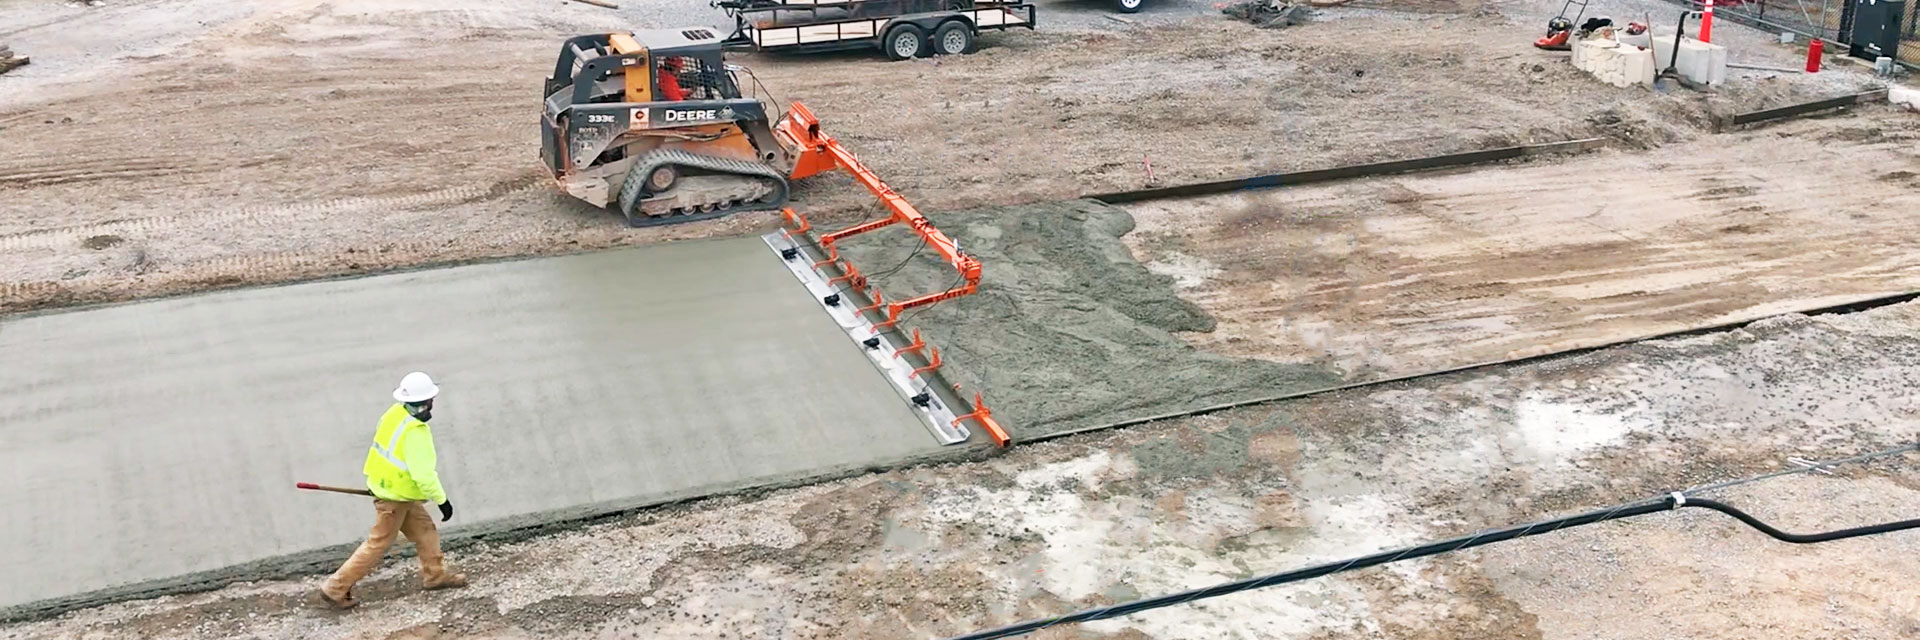 Three step process system-- BEST Concrete Screed System Same as Major Brand